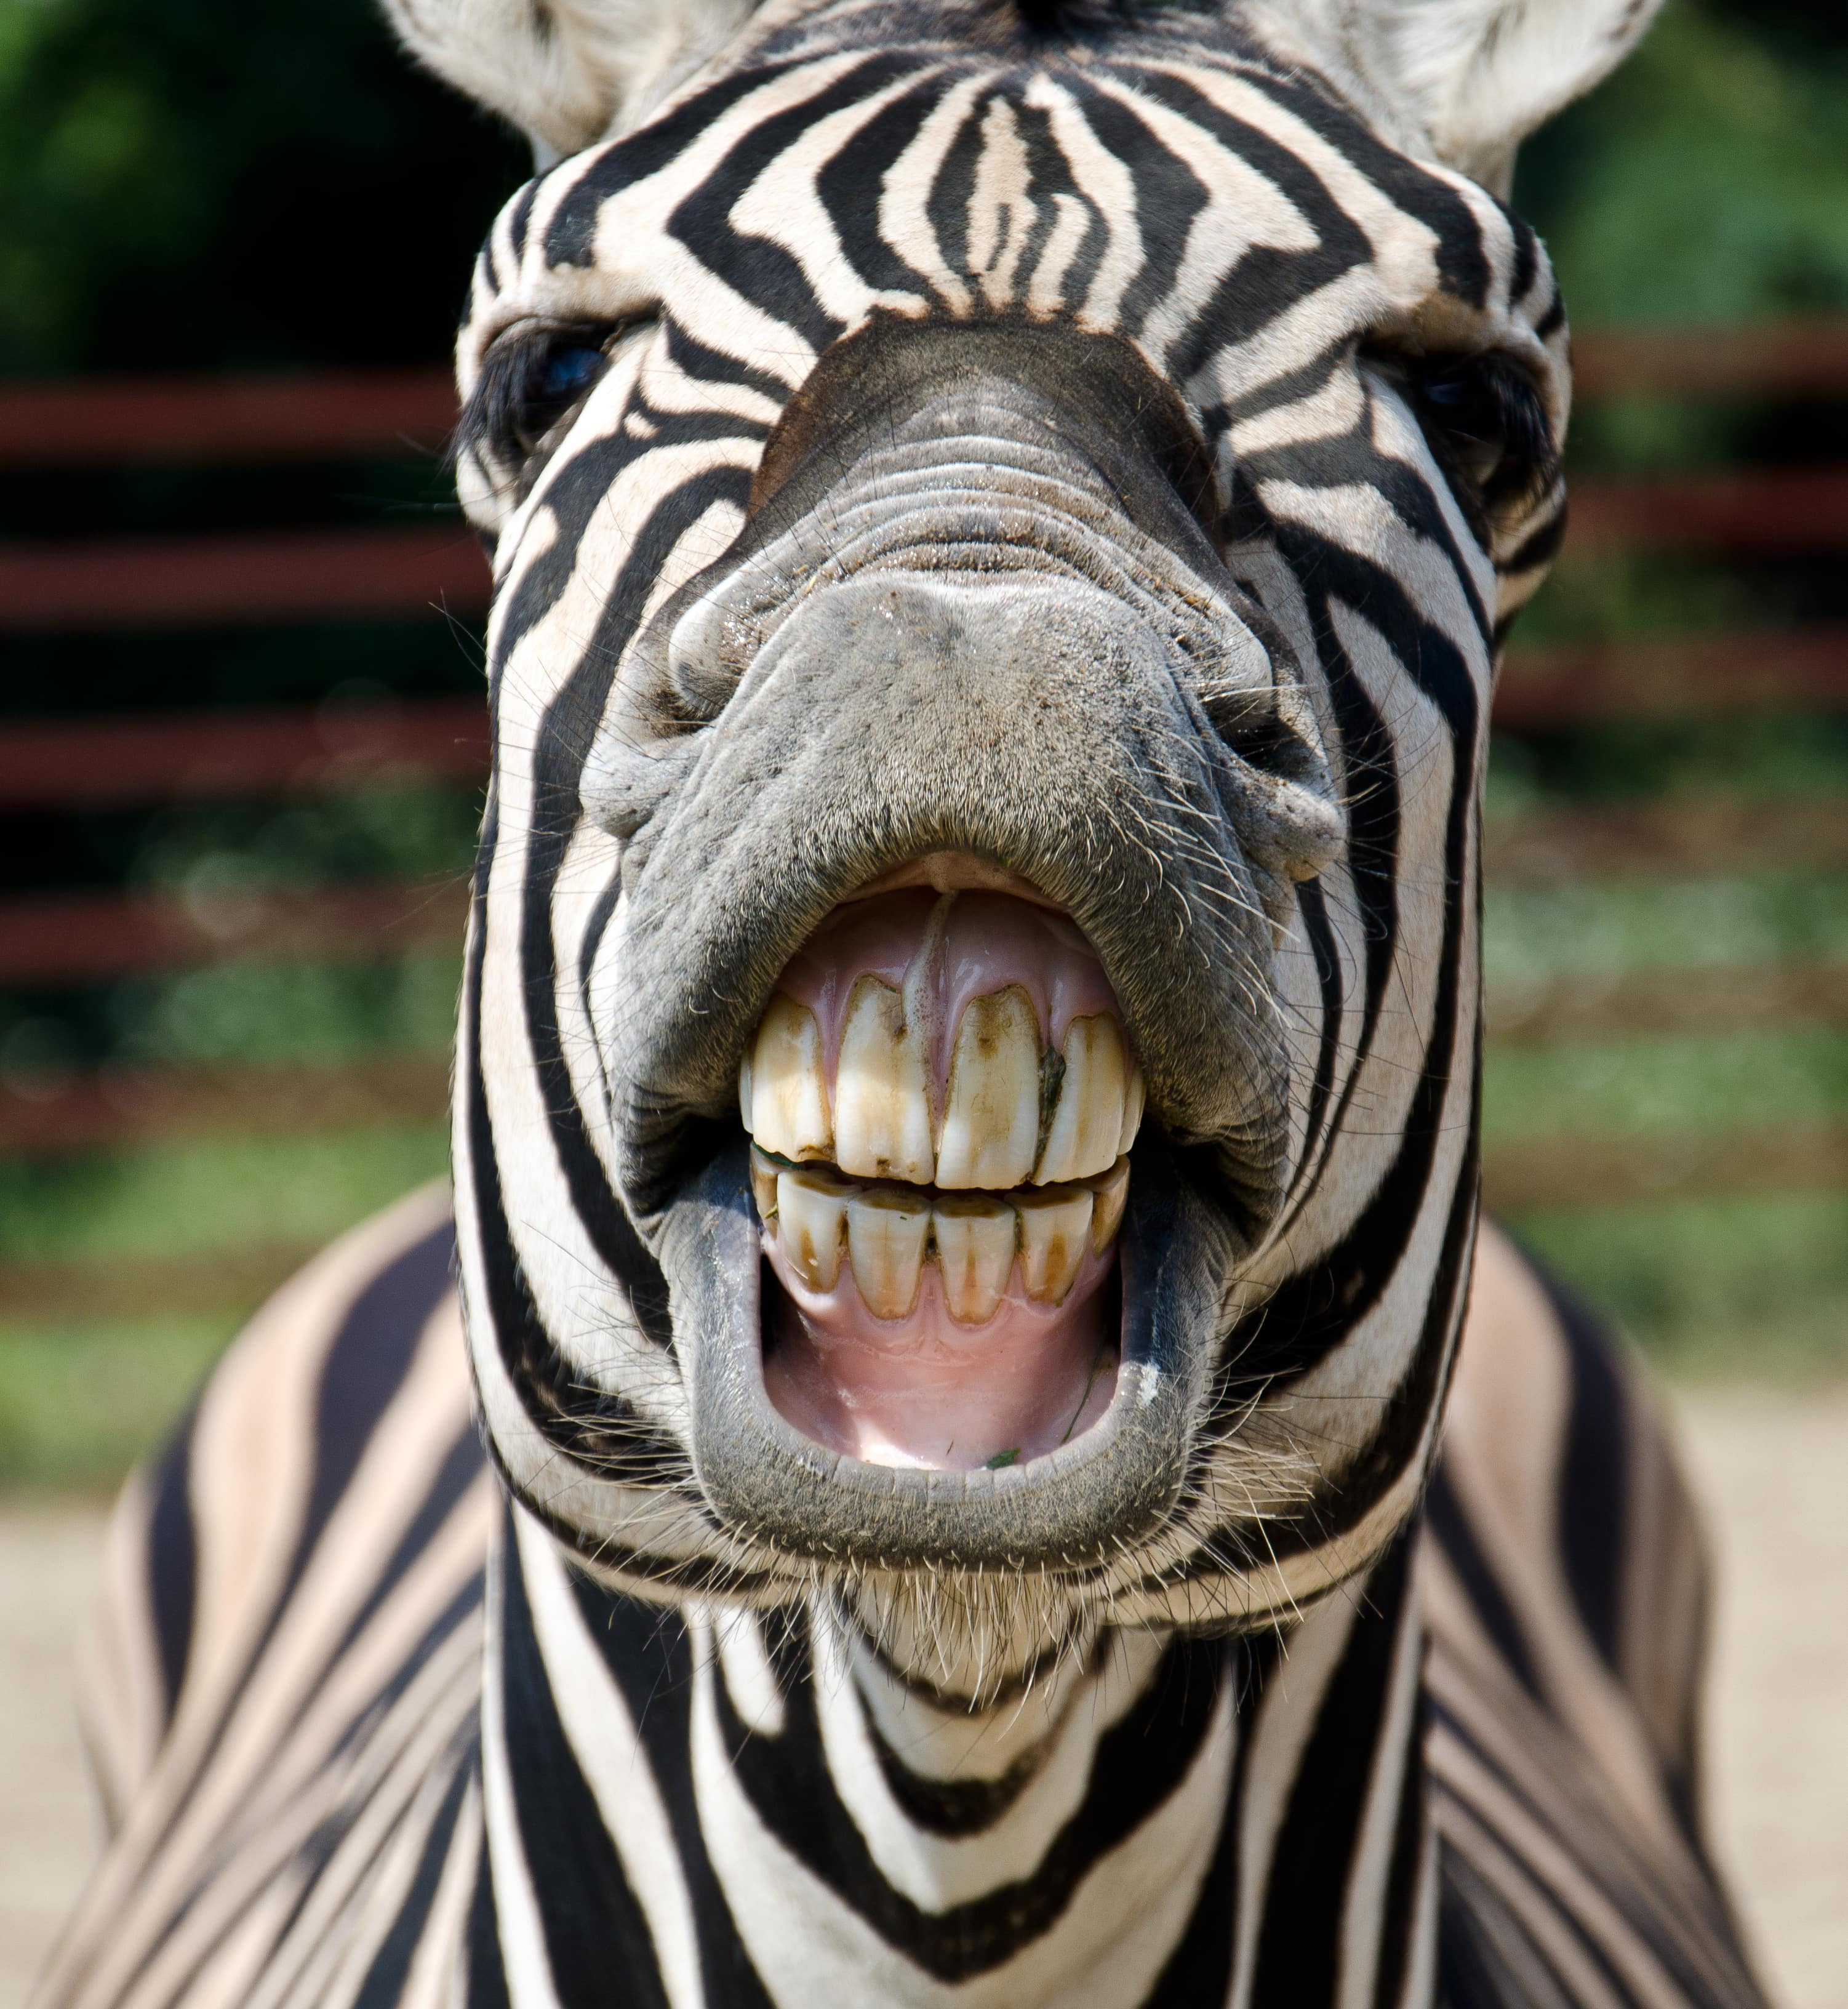 Zebra with raised lips so you can see its teeth